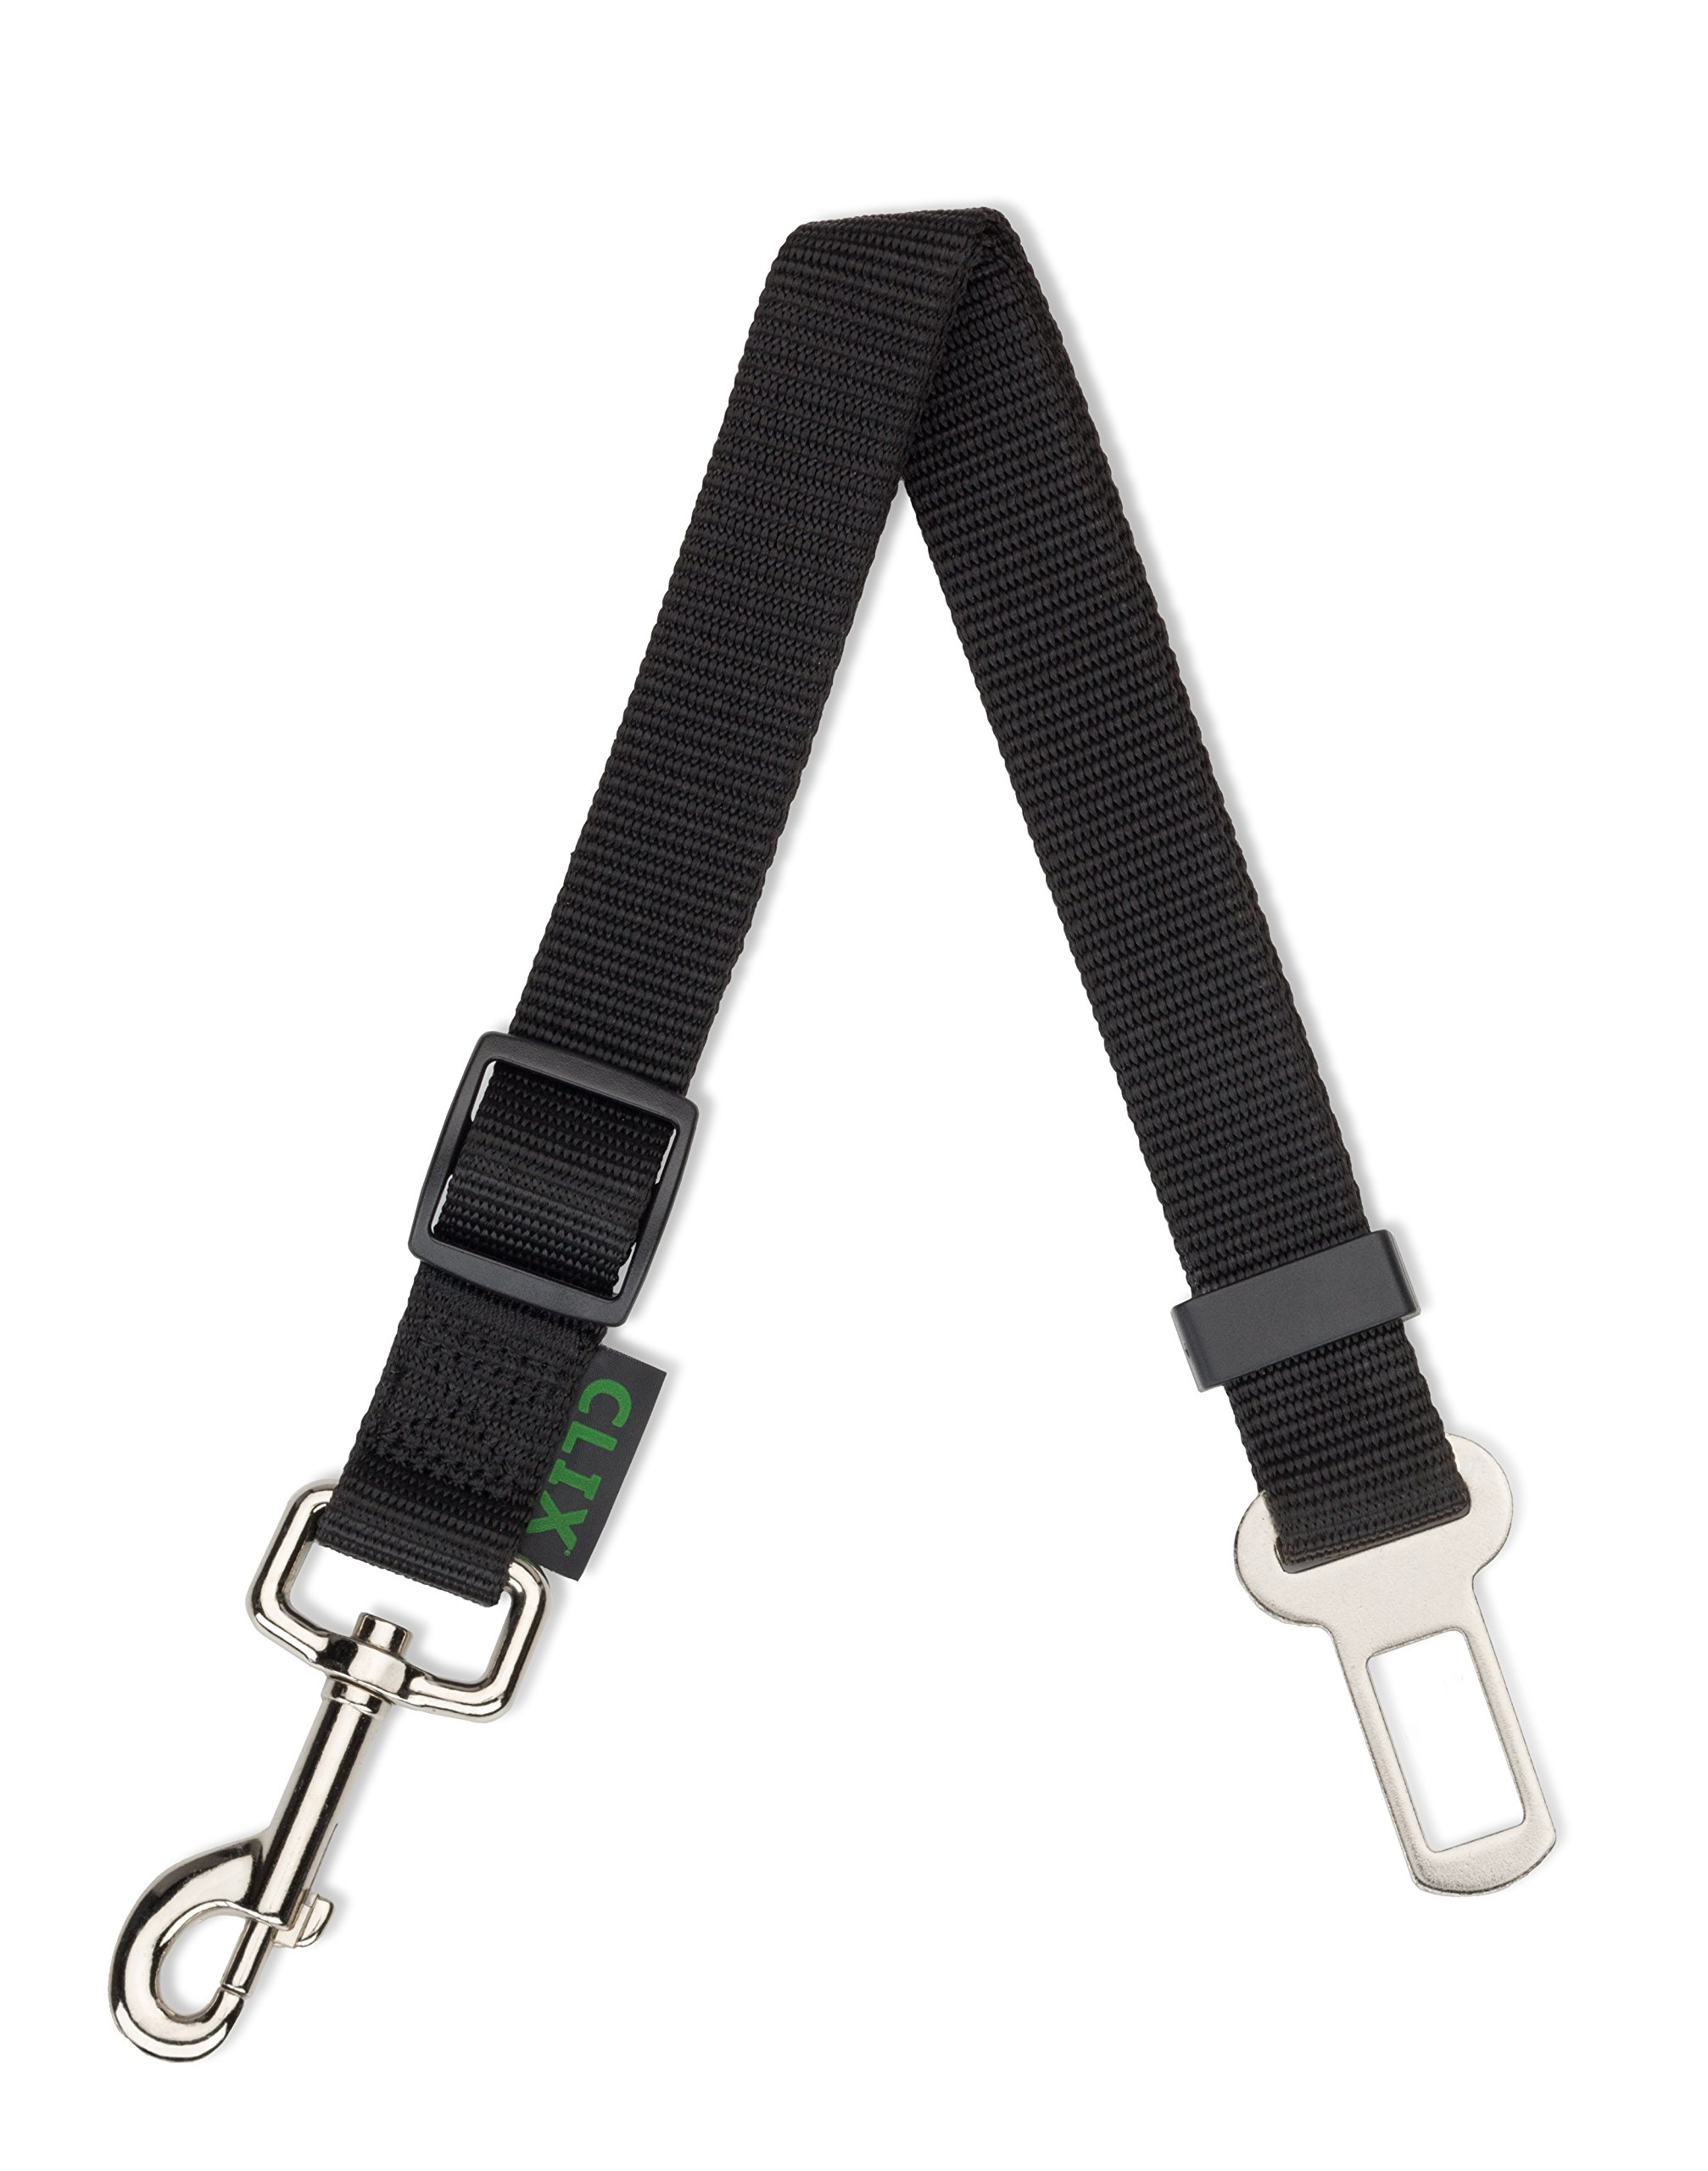 CLIX Universal Seat Belt Restraint, attaches to all harnesses, clicks into any car's seatbelt